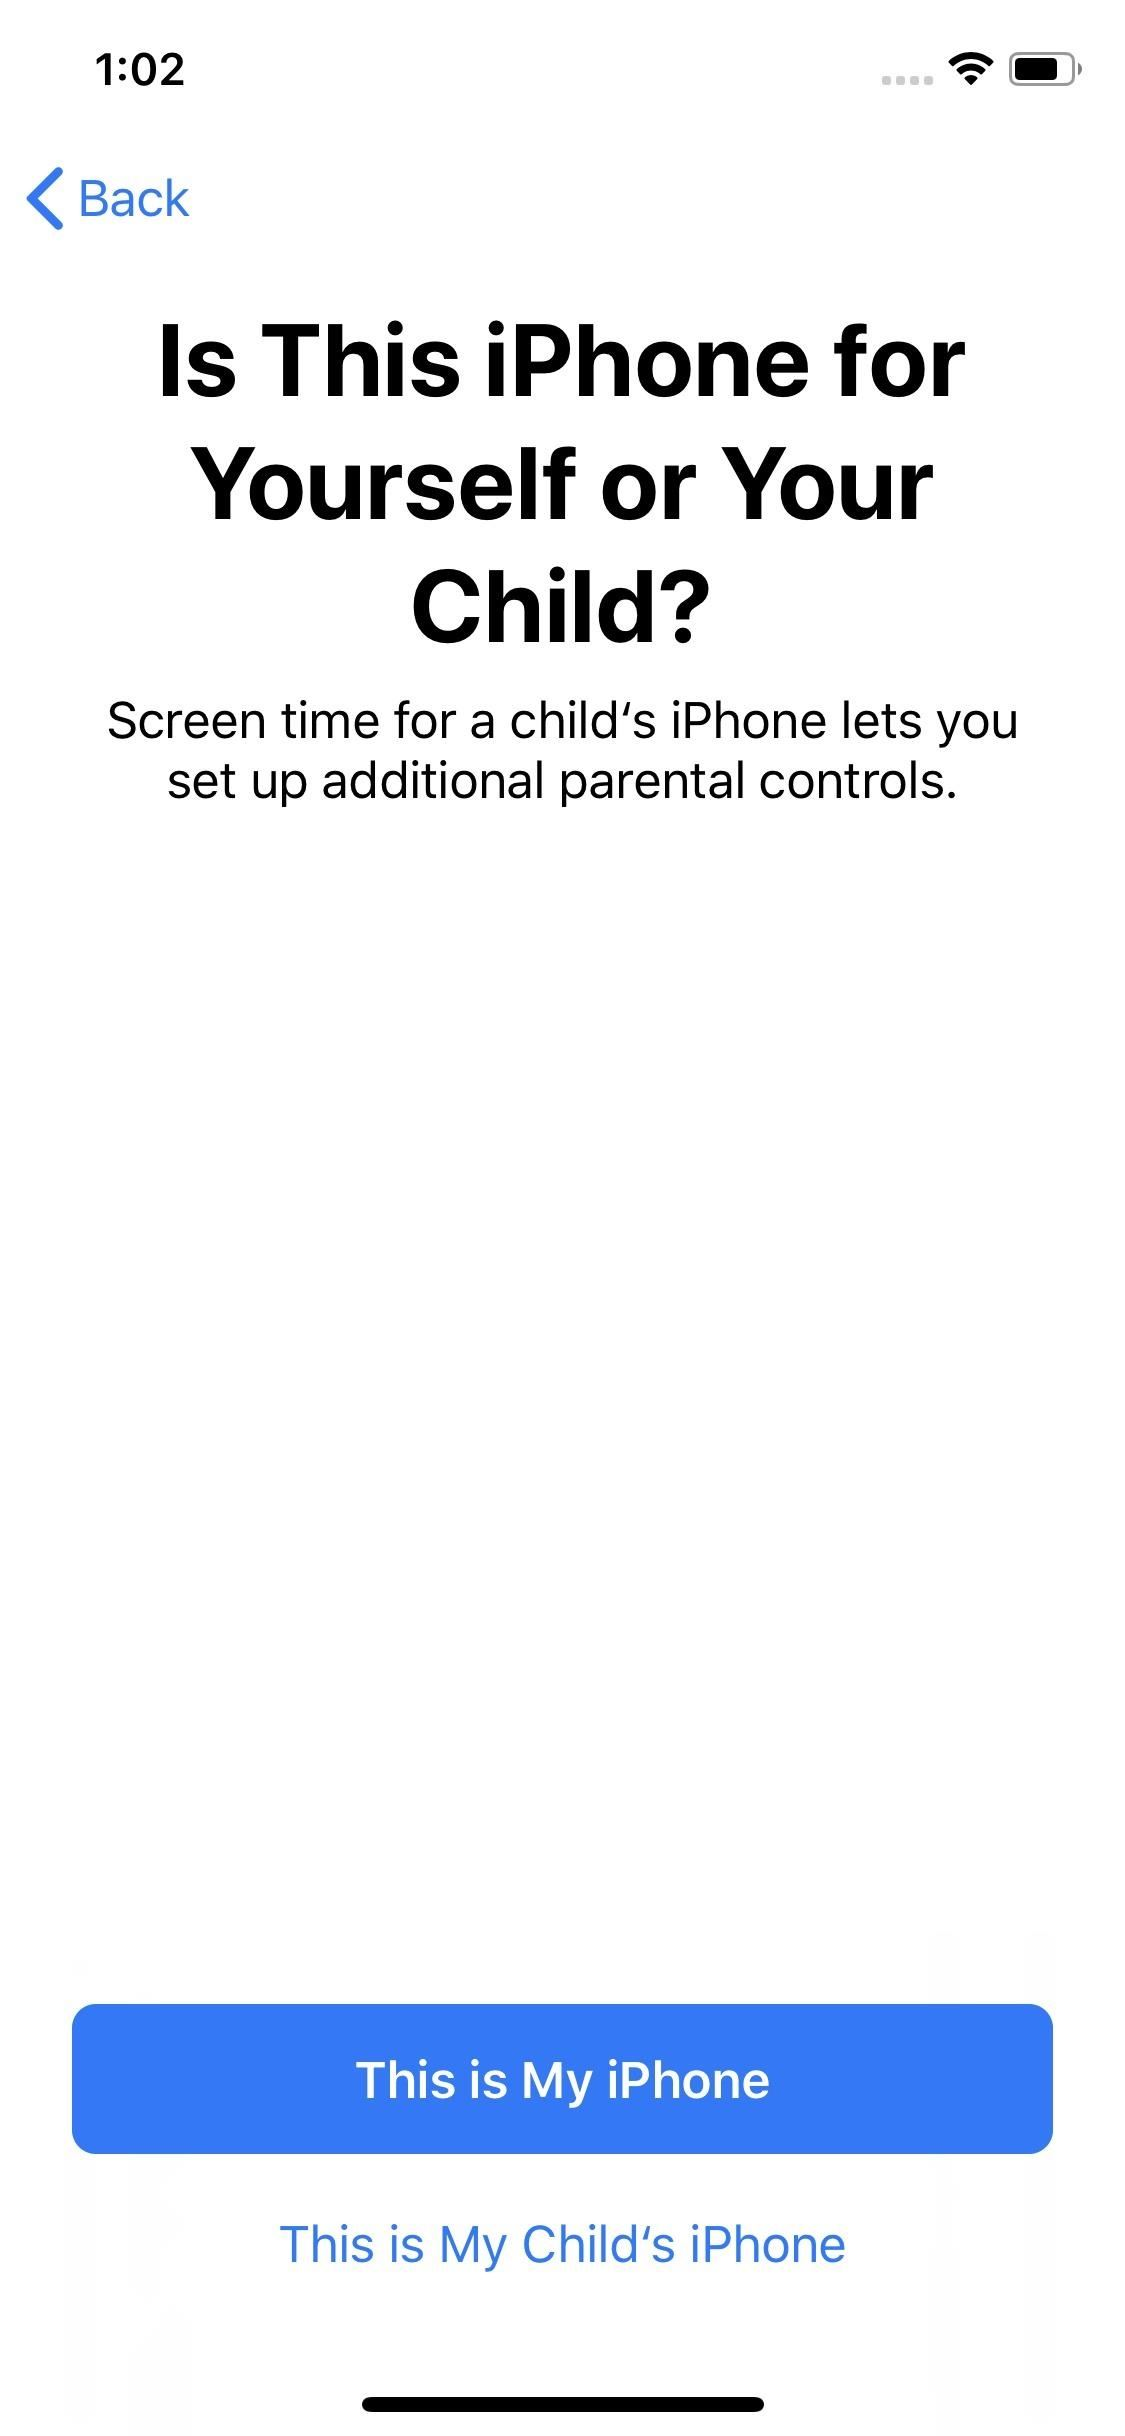 "Setting downtime in iOS 12 to keep your child (or yourself) distracted [19659009] Now you can set the start and end times for downtime simply by tapping both. ""Start"" and ""End"" and select the desired times for downtime to start and stop. During these hours, most apps are not available unless the passcode is entered (more on that later). When you are satisfied with the settings, tap ""Set Downtime"" to continue. </p><div><script async src="